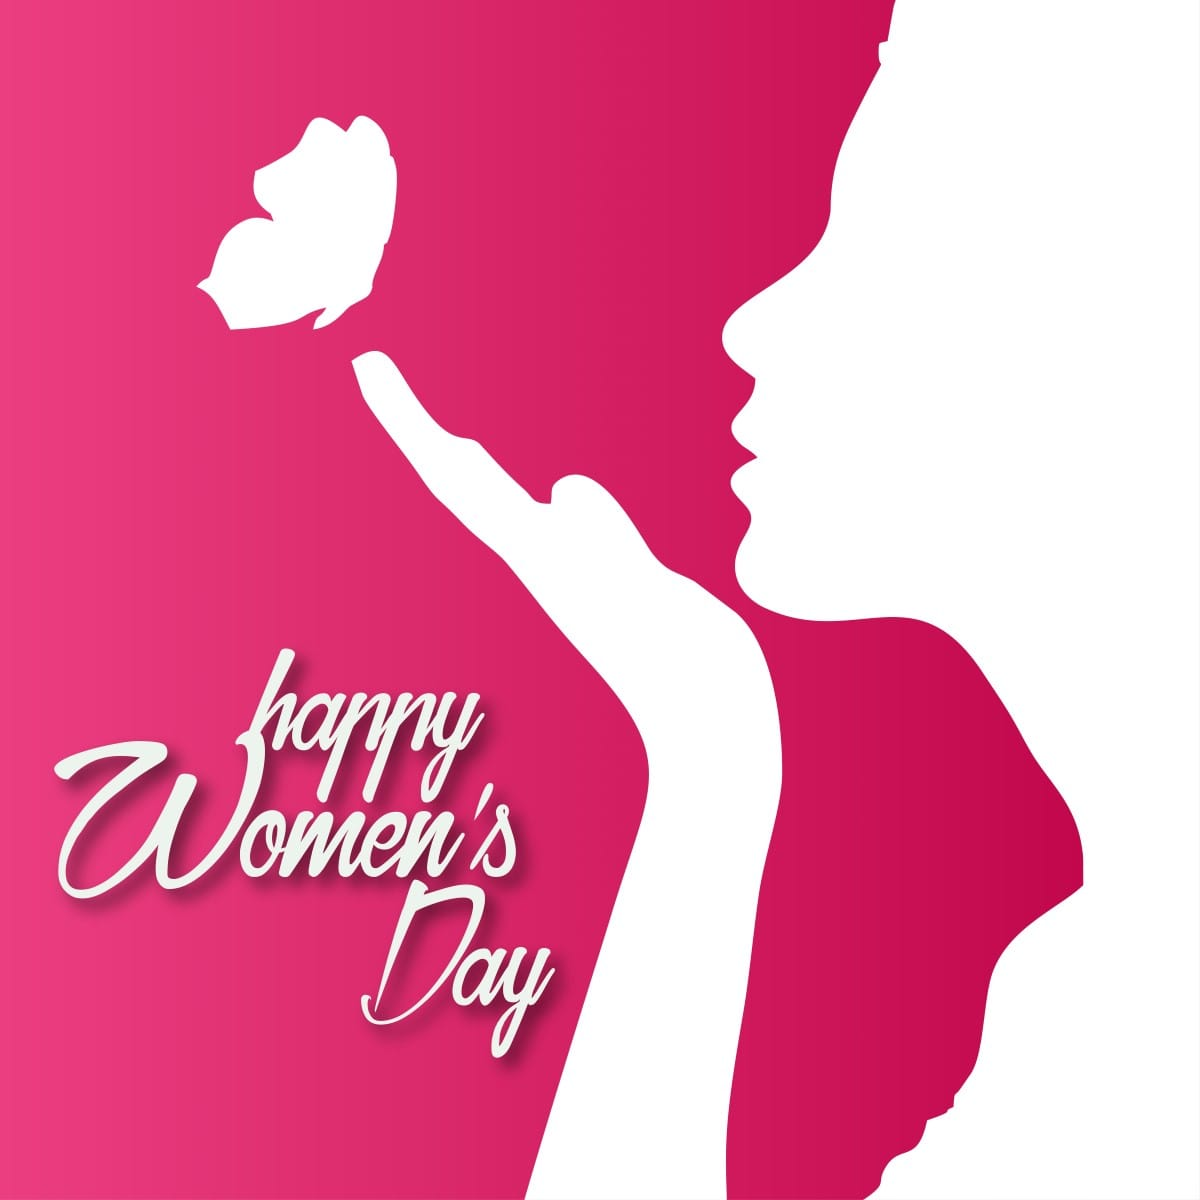 happy womens day greetings wishes latest image hd wallpaper